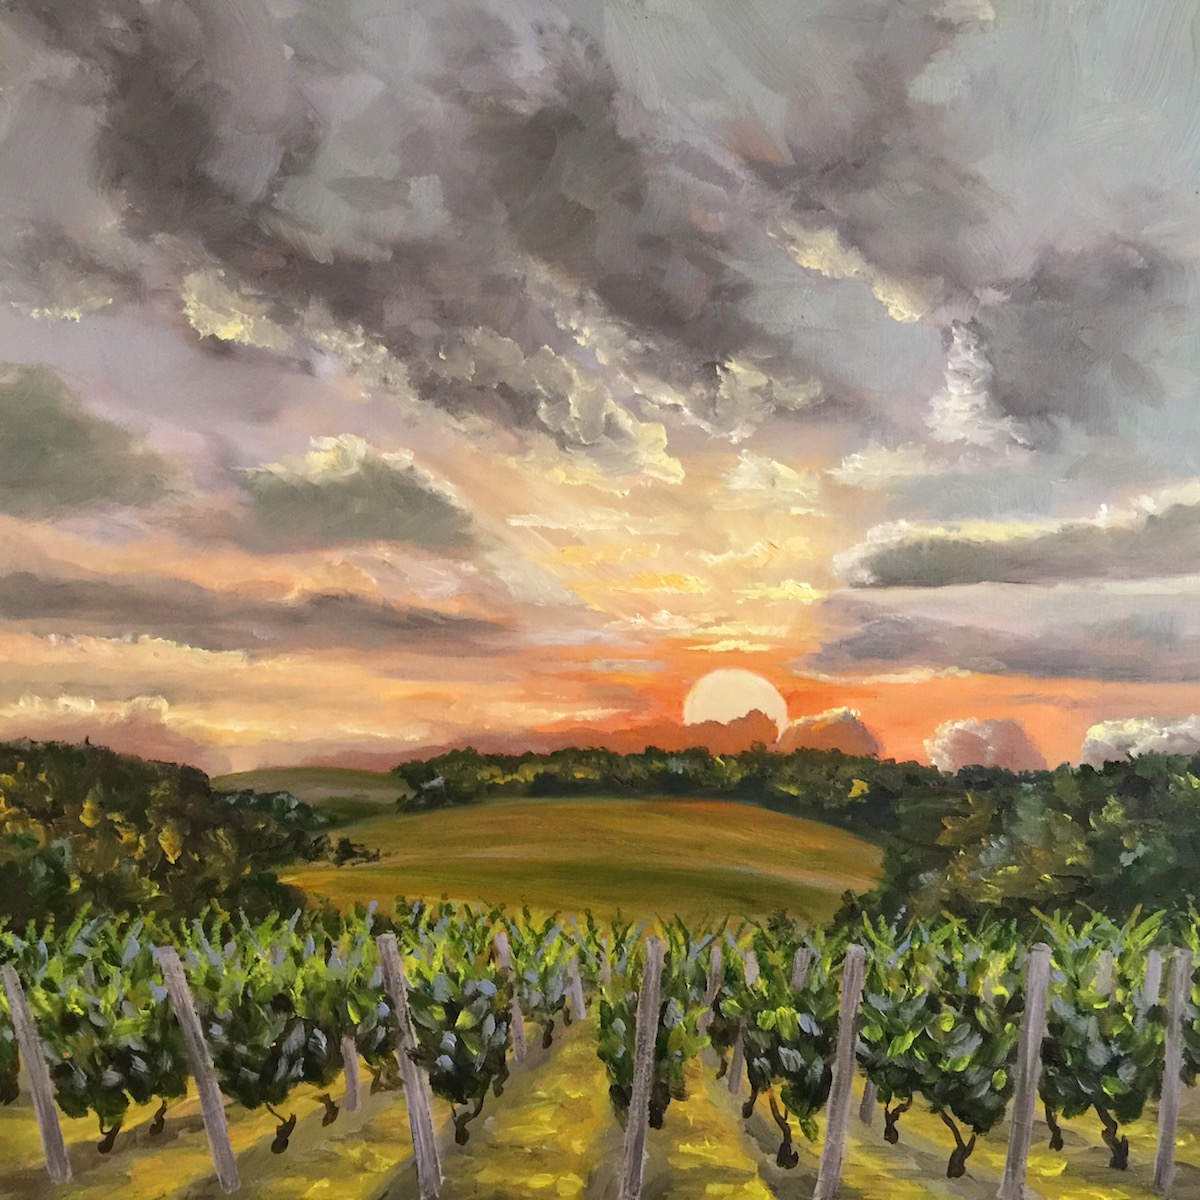 Rolling Vines - Painting by Stephanie Schlatter